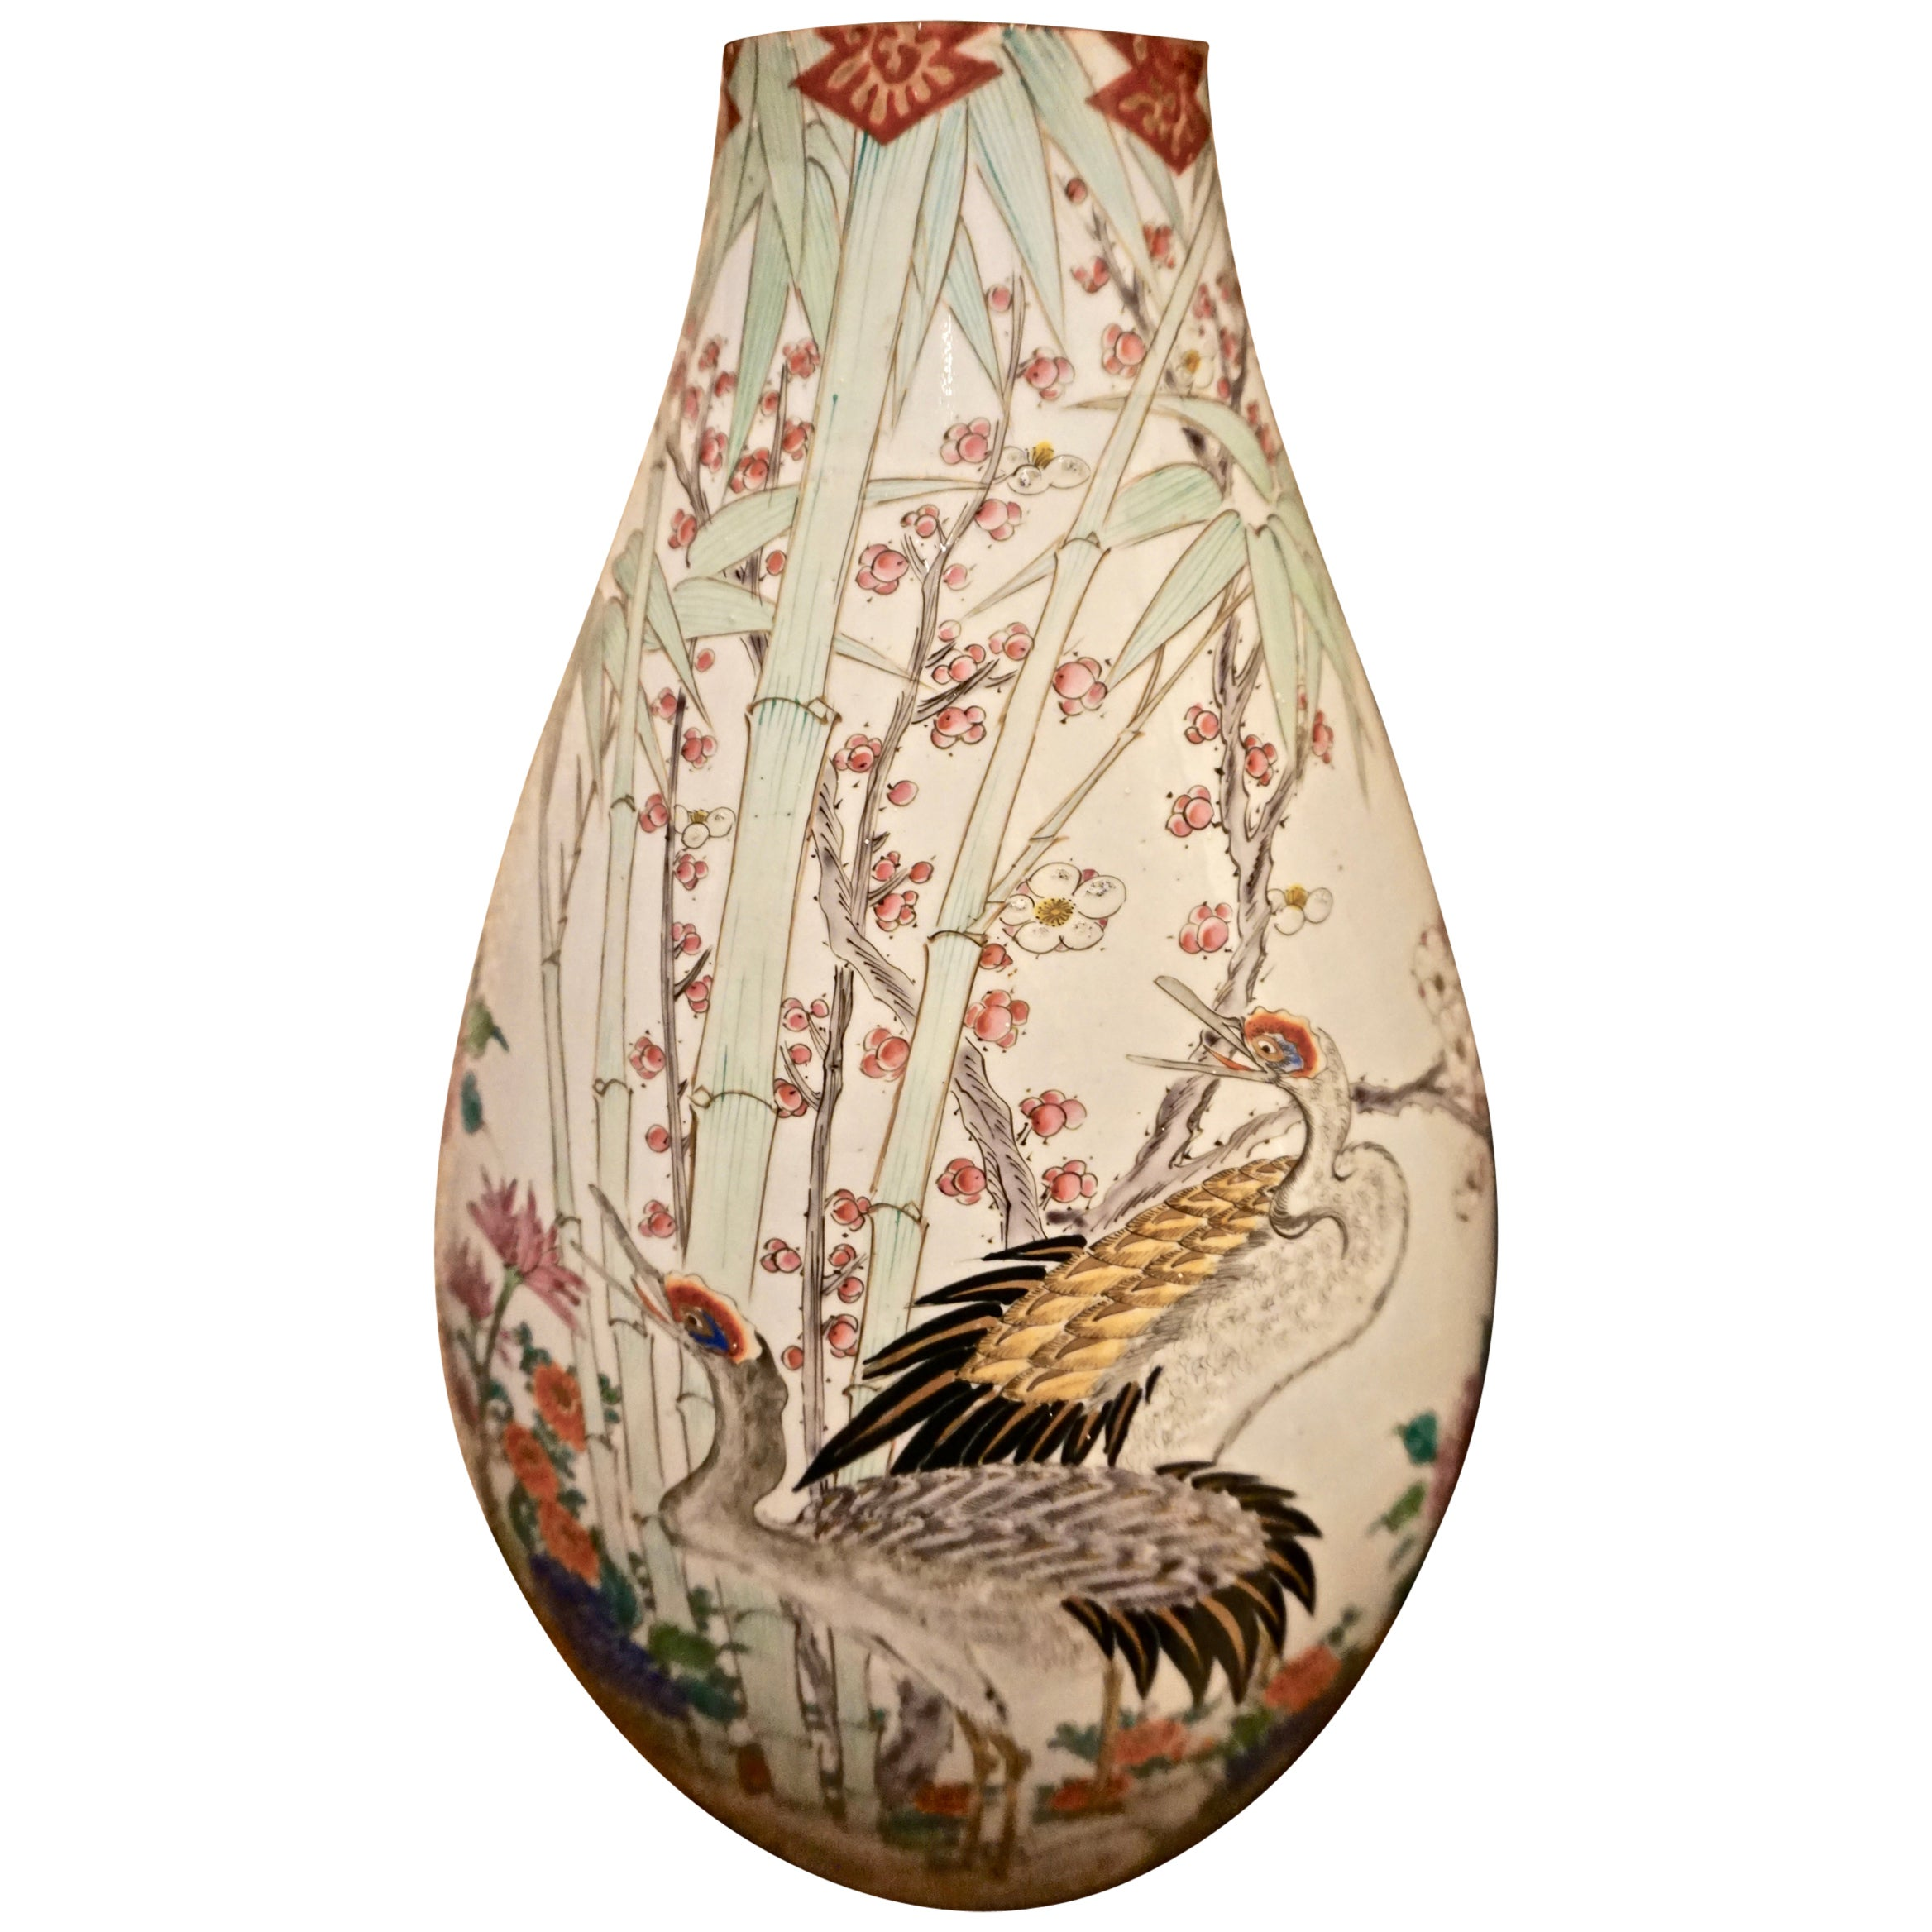 19th Century Handmade Large Japanese Conical Vase with Cranes and Foliage